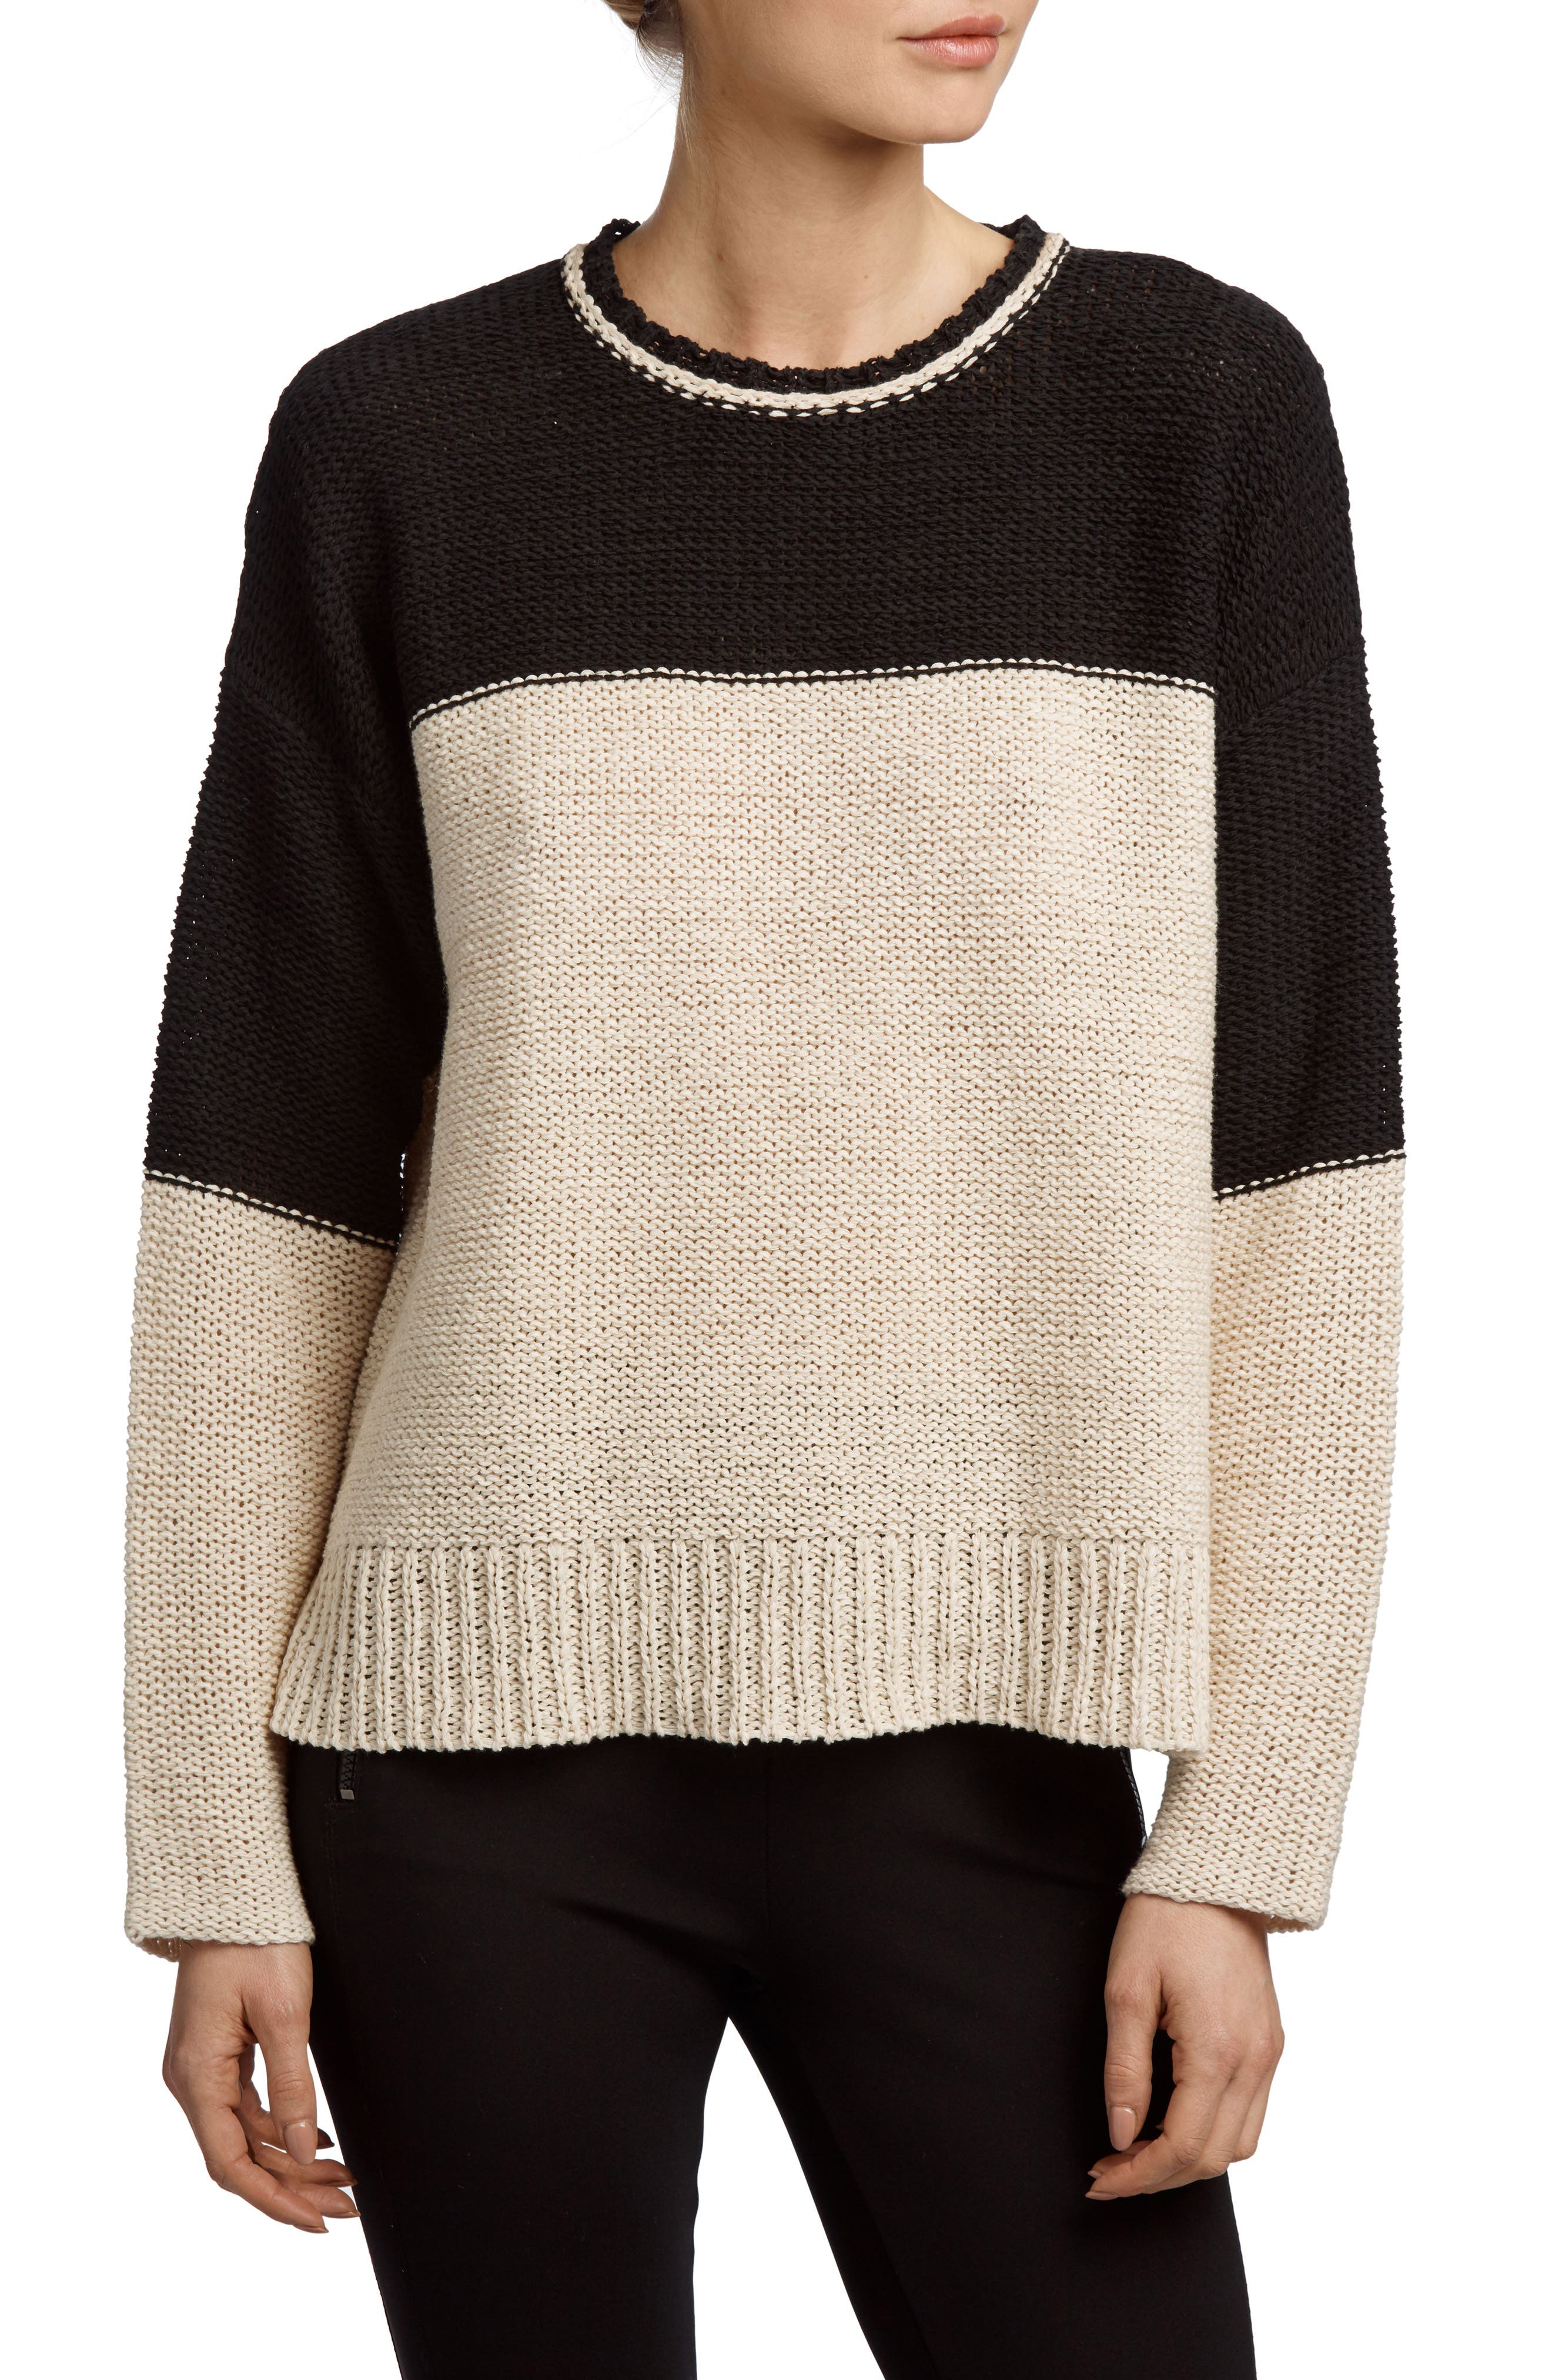 James Perse Crewneck Sweater